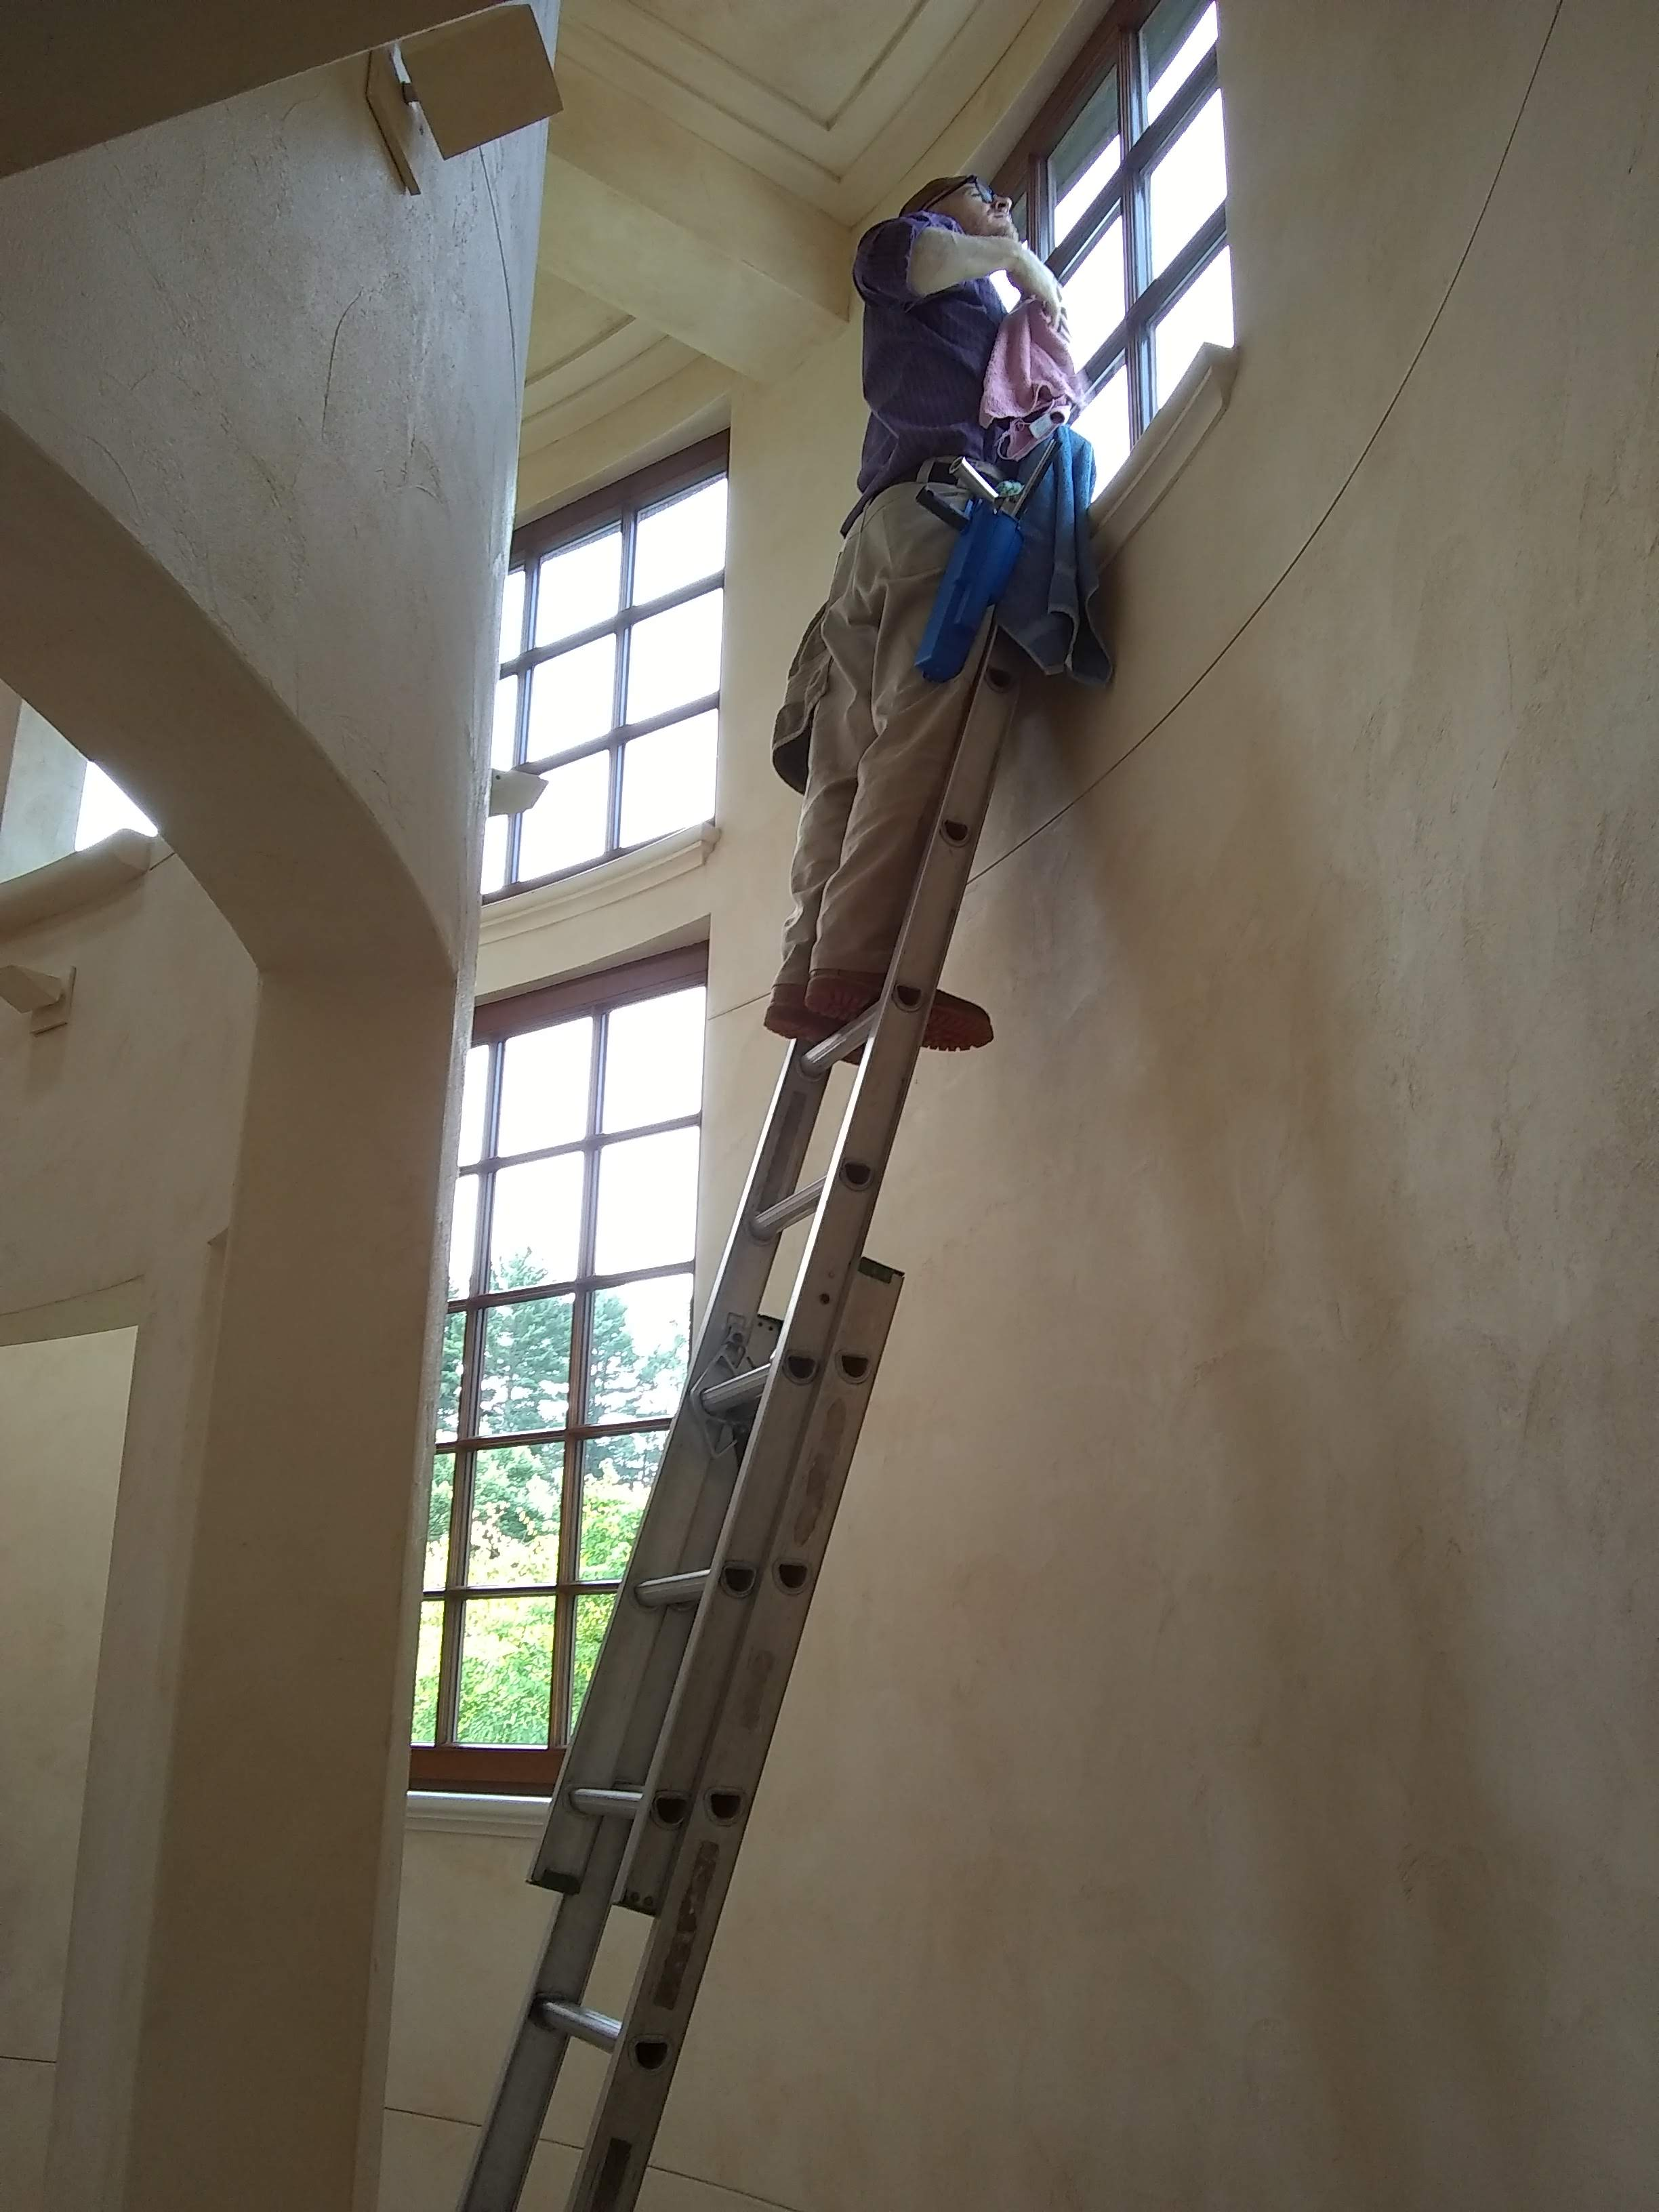 cleaning windows over a staircase